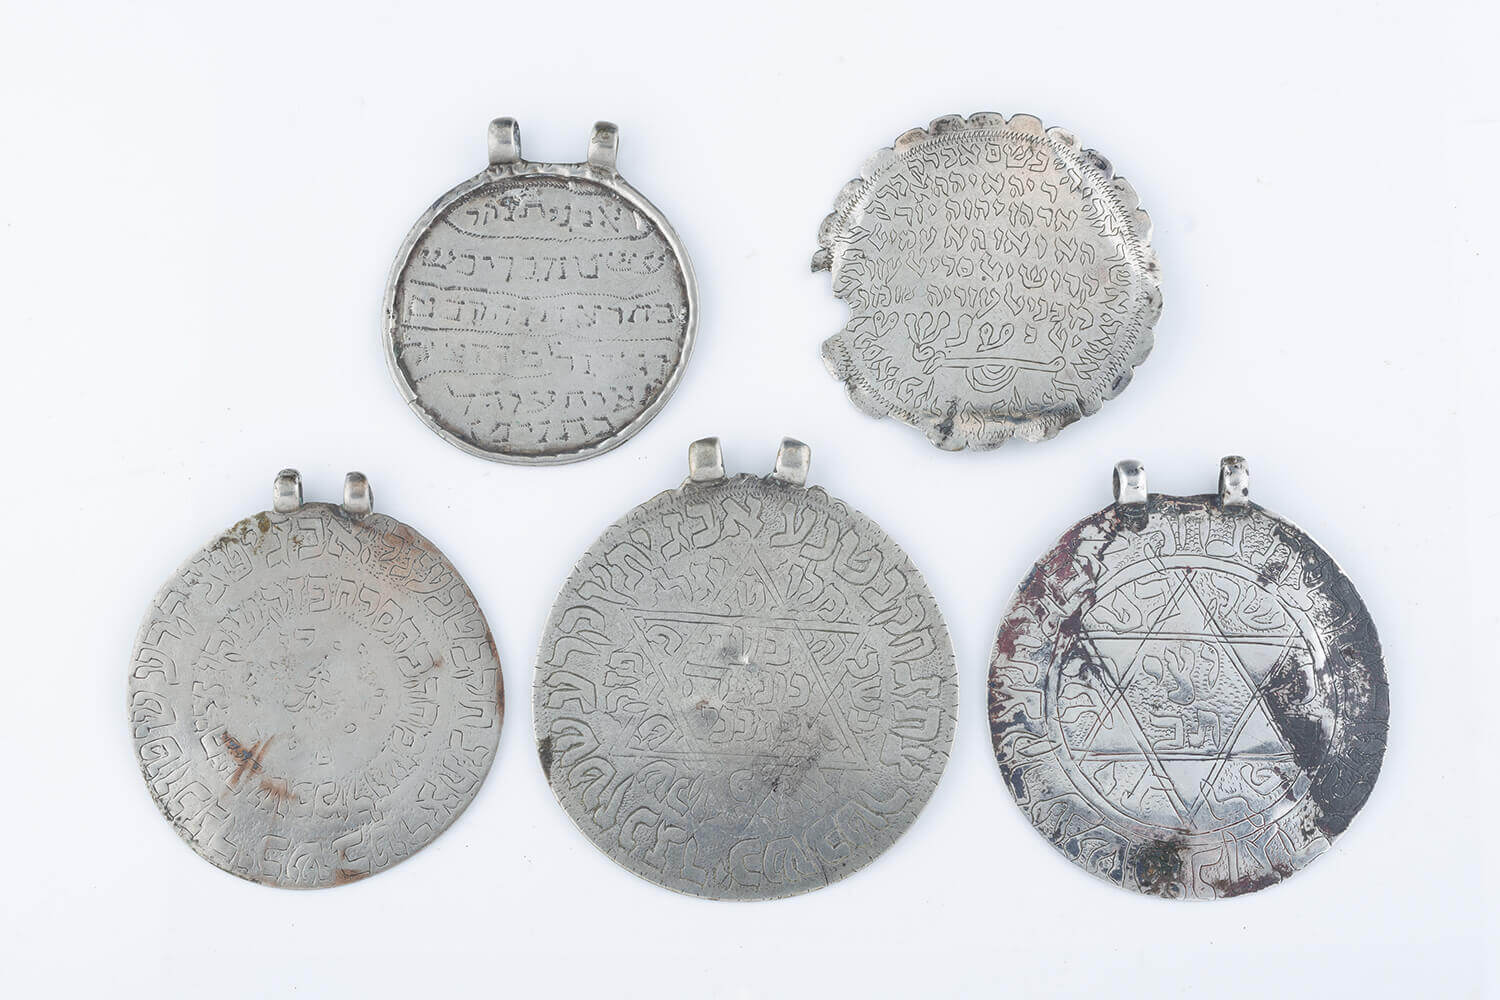 030. A GROUP OF FIVE LARGE CIRCULAR AMULETS